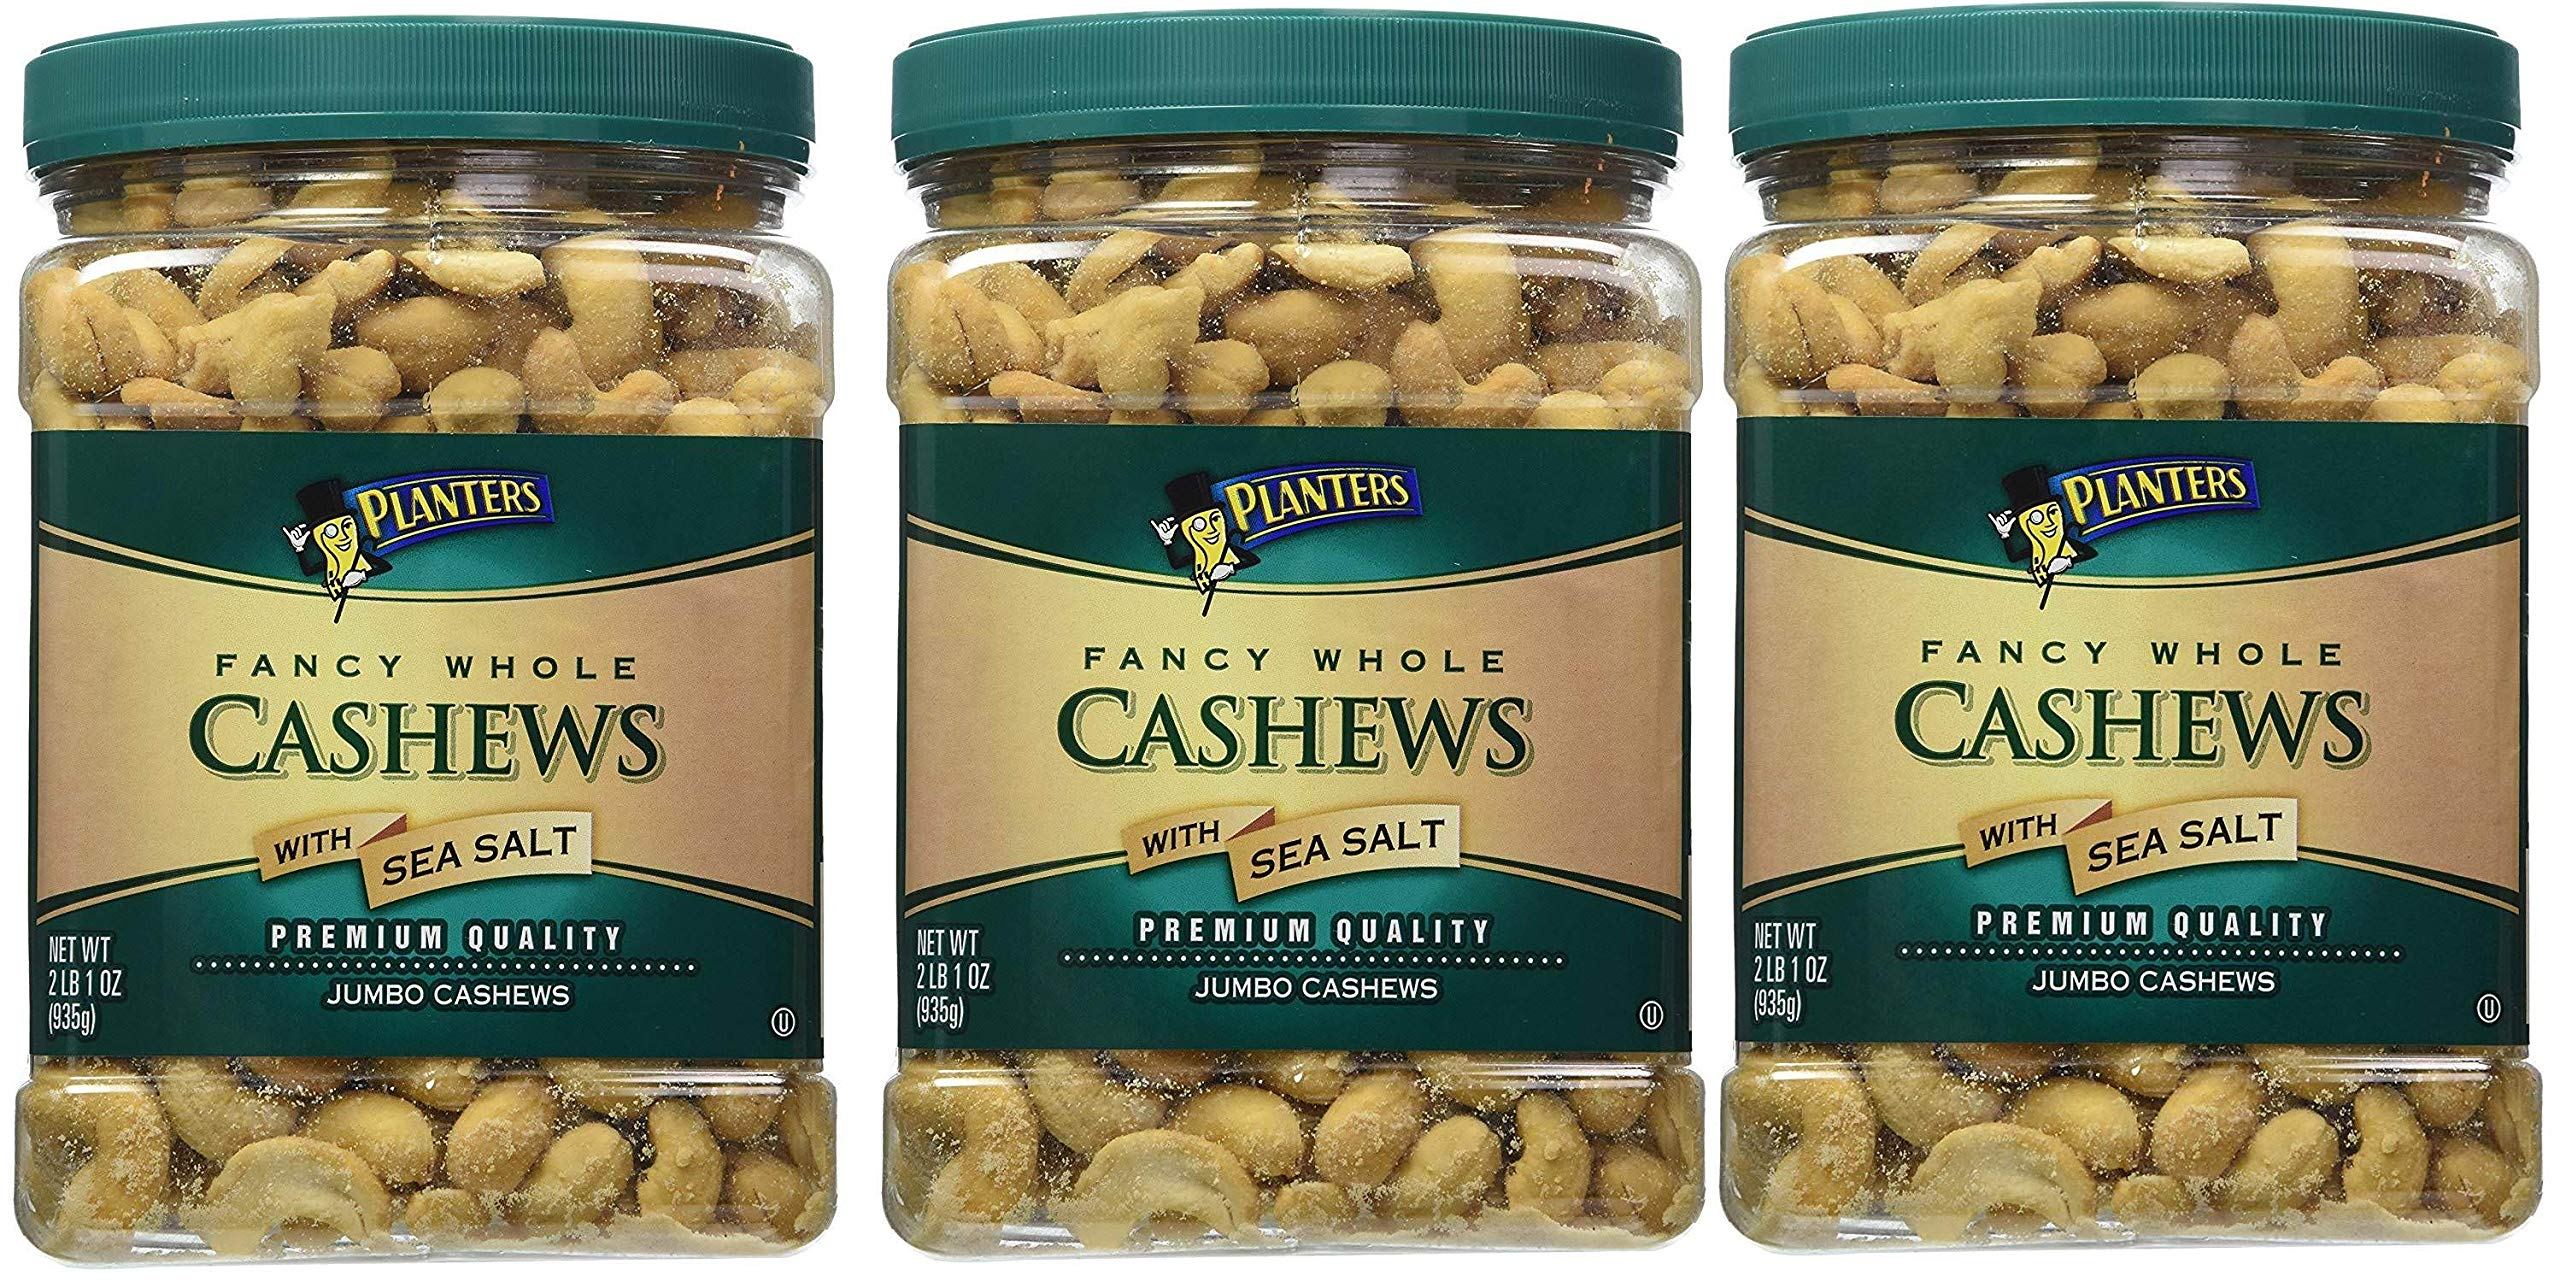 Planters Fancy Whole Cashews, Salted, 33 Ounce, 3 Tubs